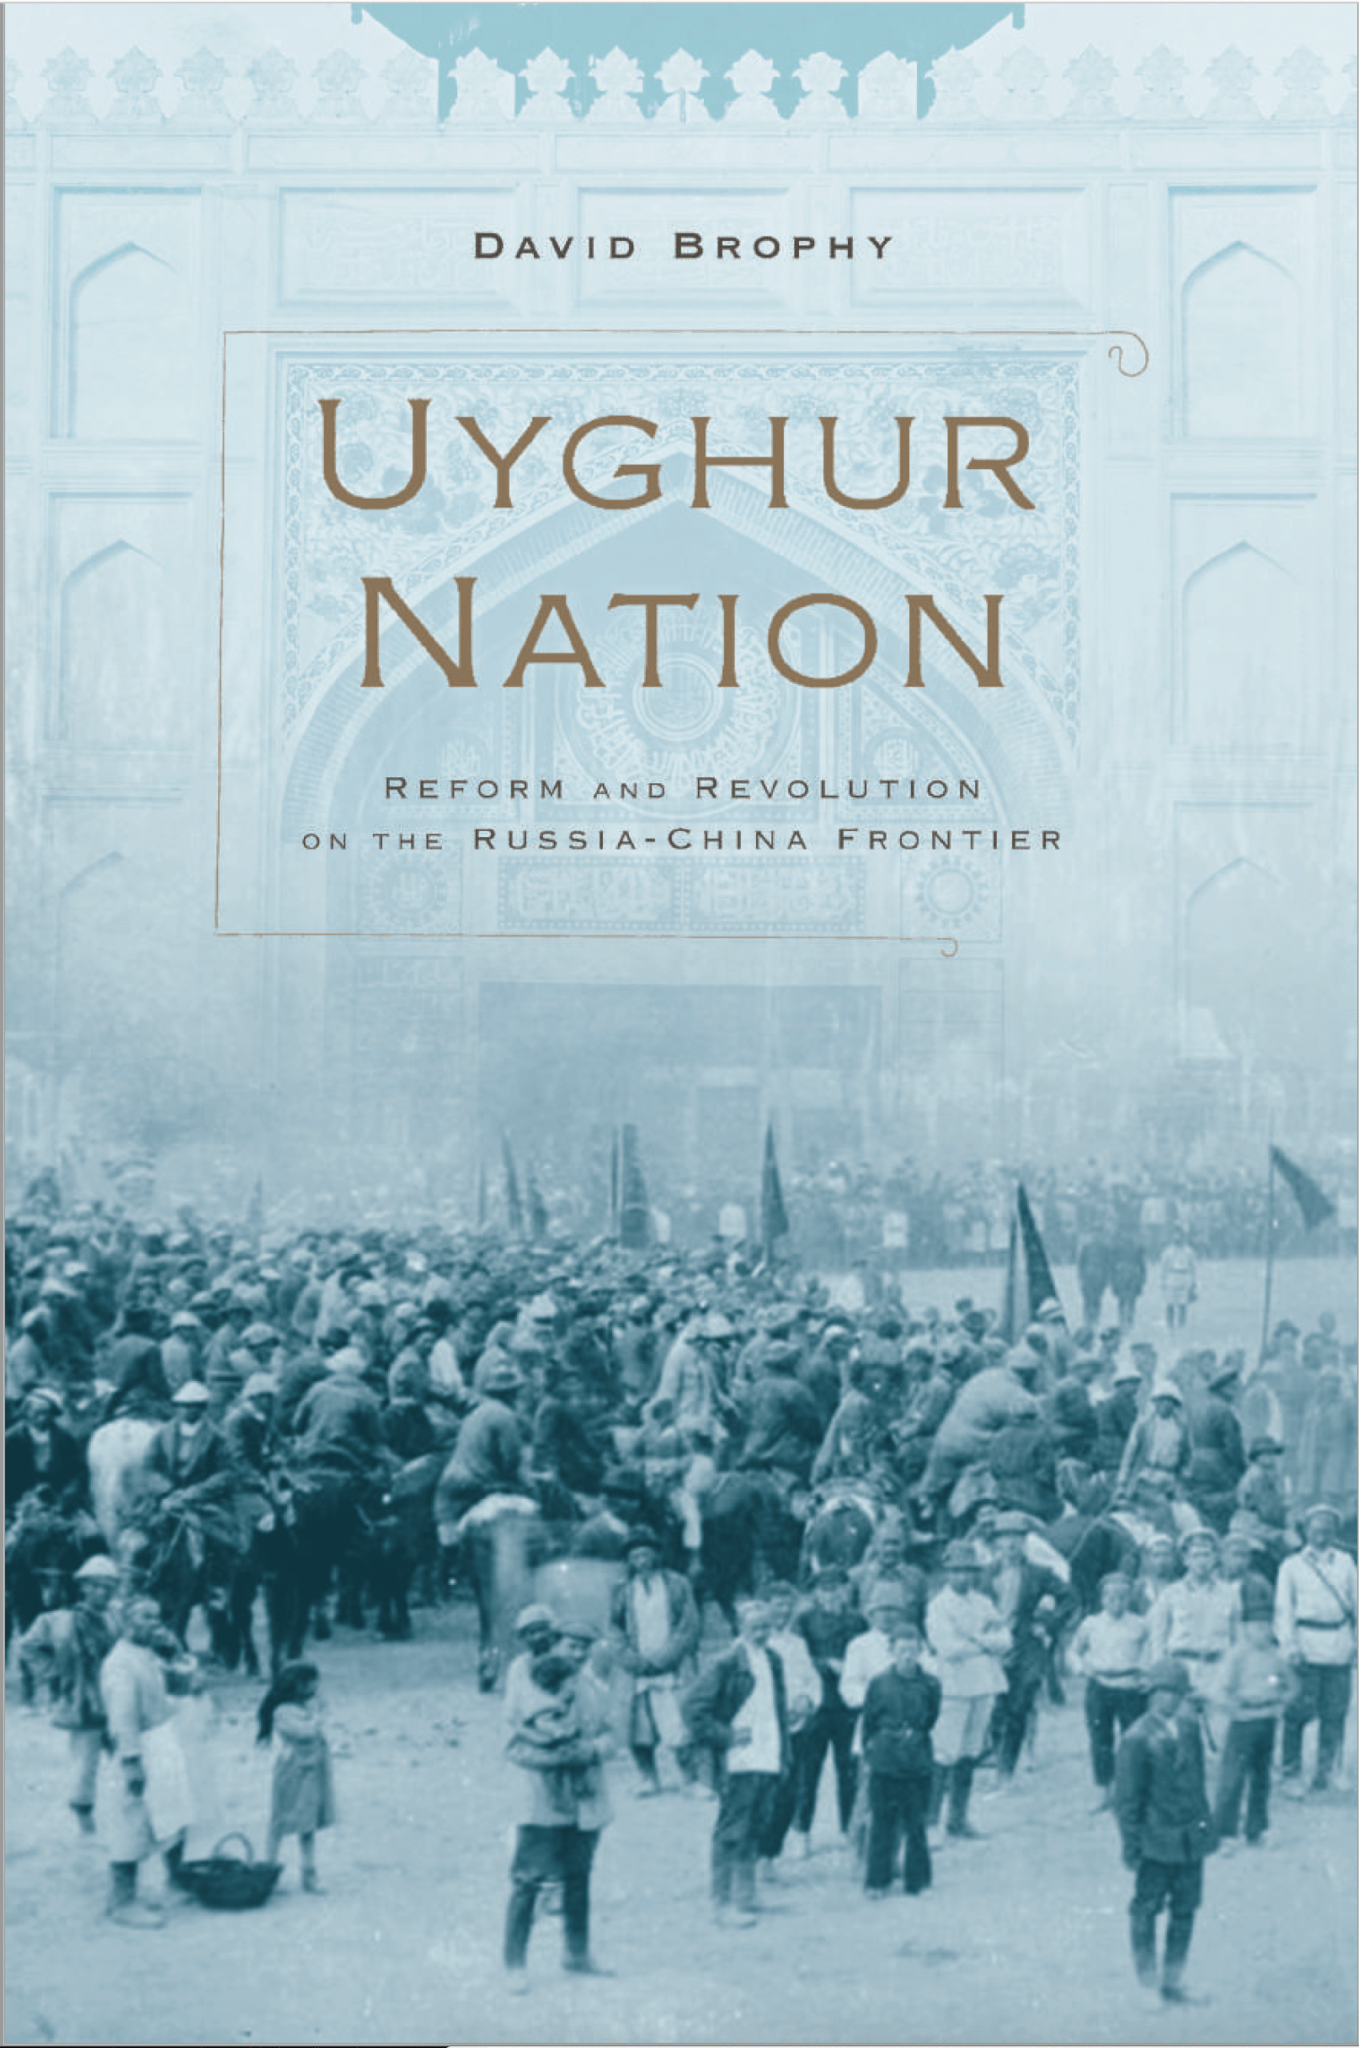 Screenshot 2020 02 01 at 14.24.20 - Uyghur Nation: Reform and Revolution on the Russia-China Frontier